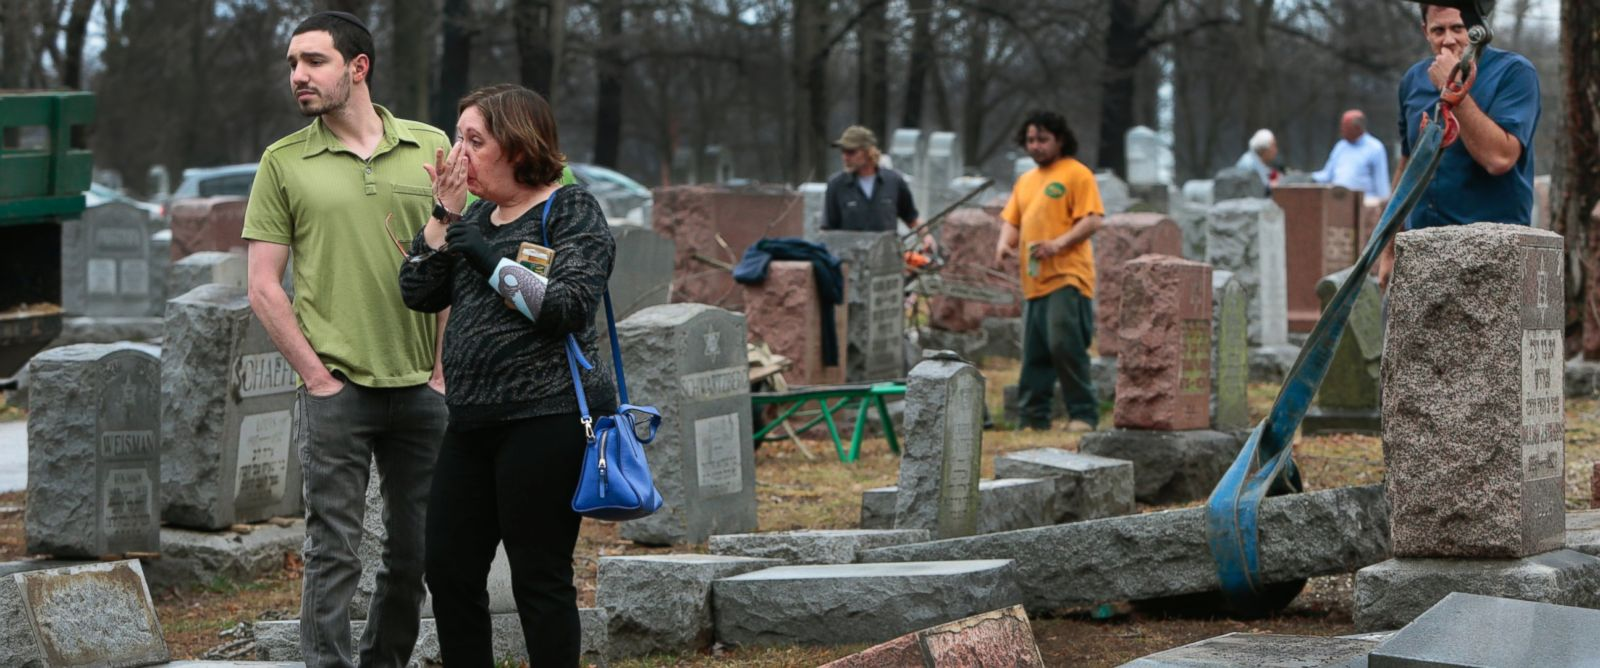 Muslim activists raise over $70,000 to aid vandalized Jewish cemetery